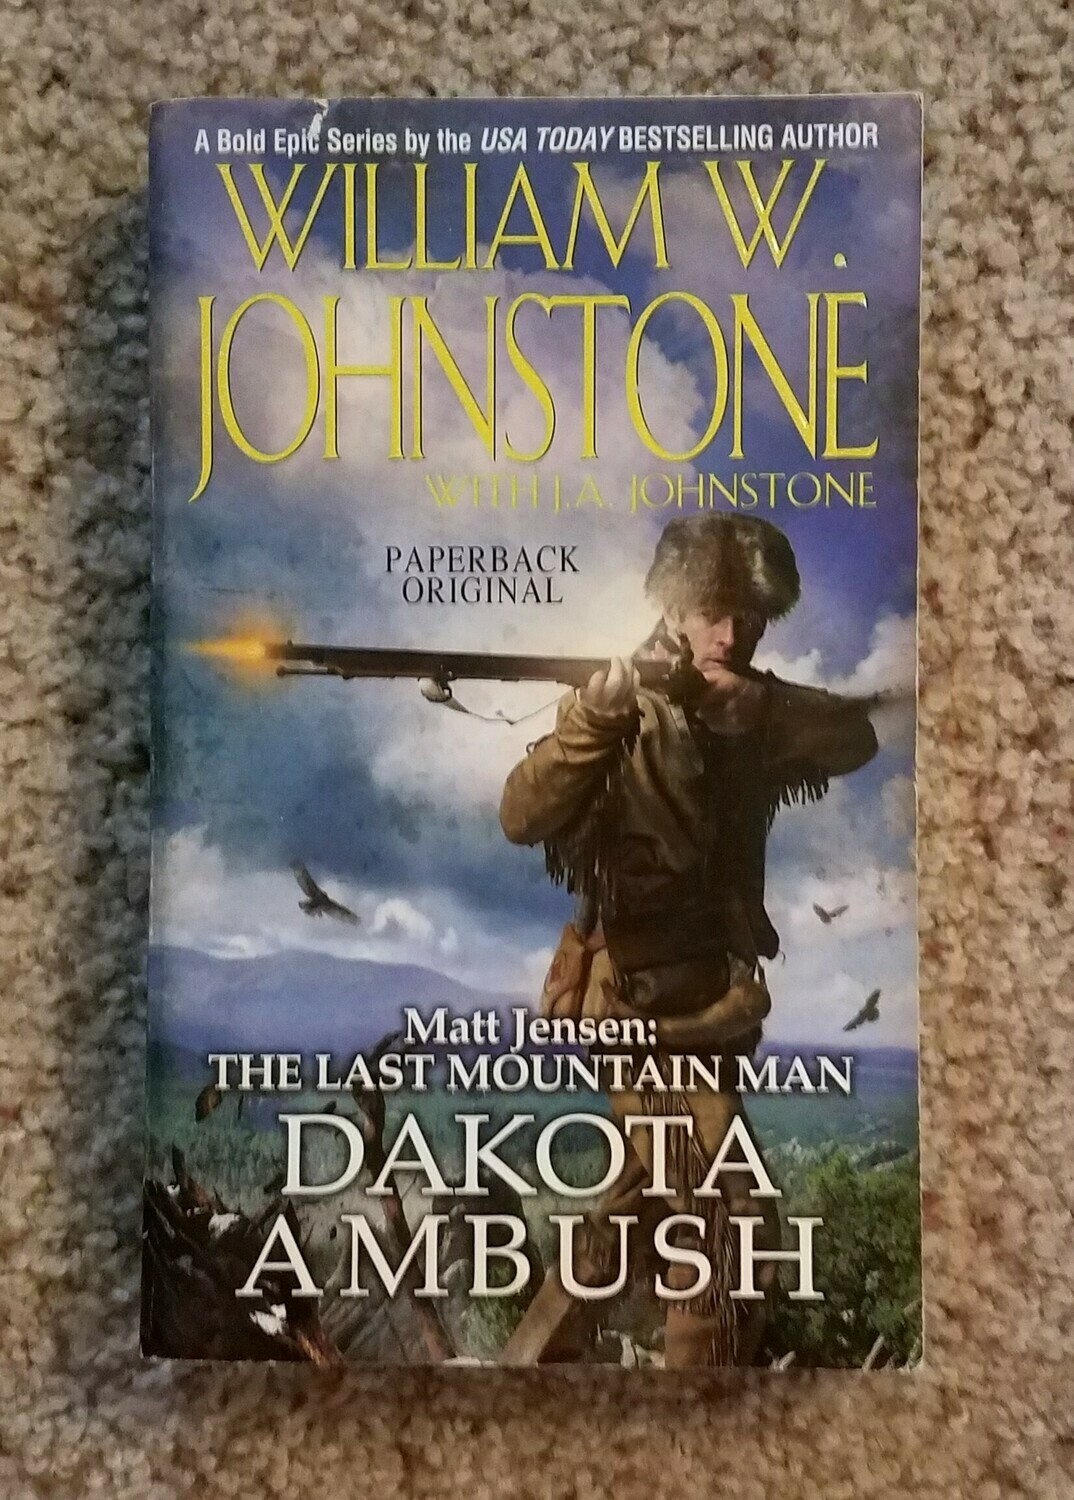 Matt Jensen: The Last Mountain Man - Dakota Ambush by William W. Johnston with J.A Johnstone